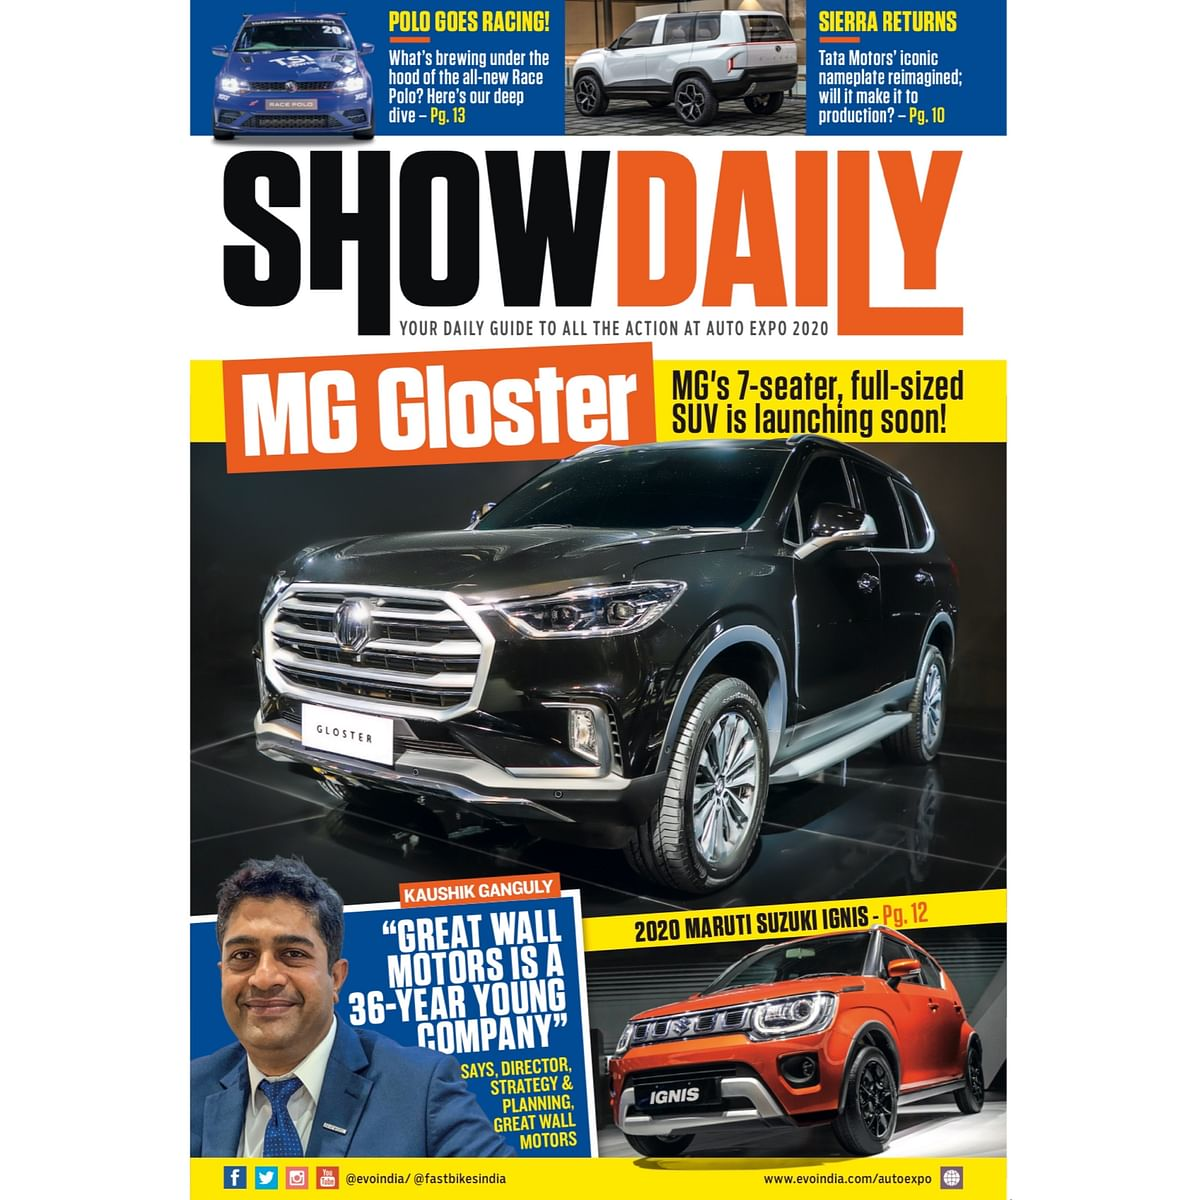 Day 4: Auto Expo Show Daily